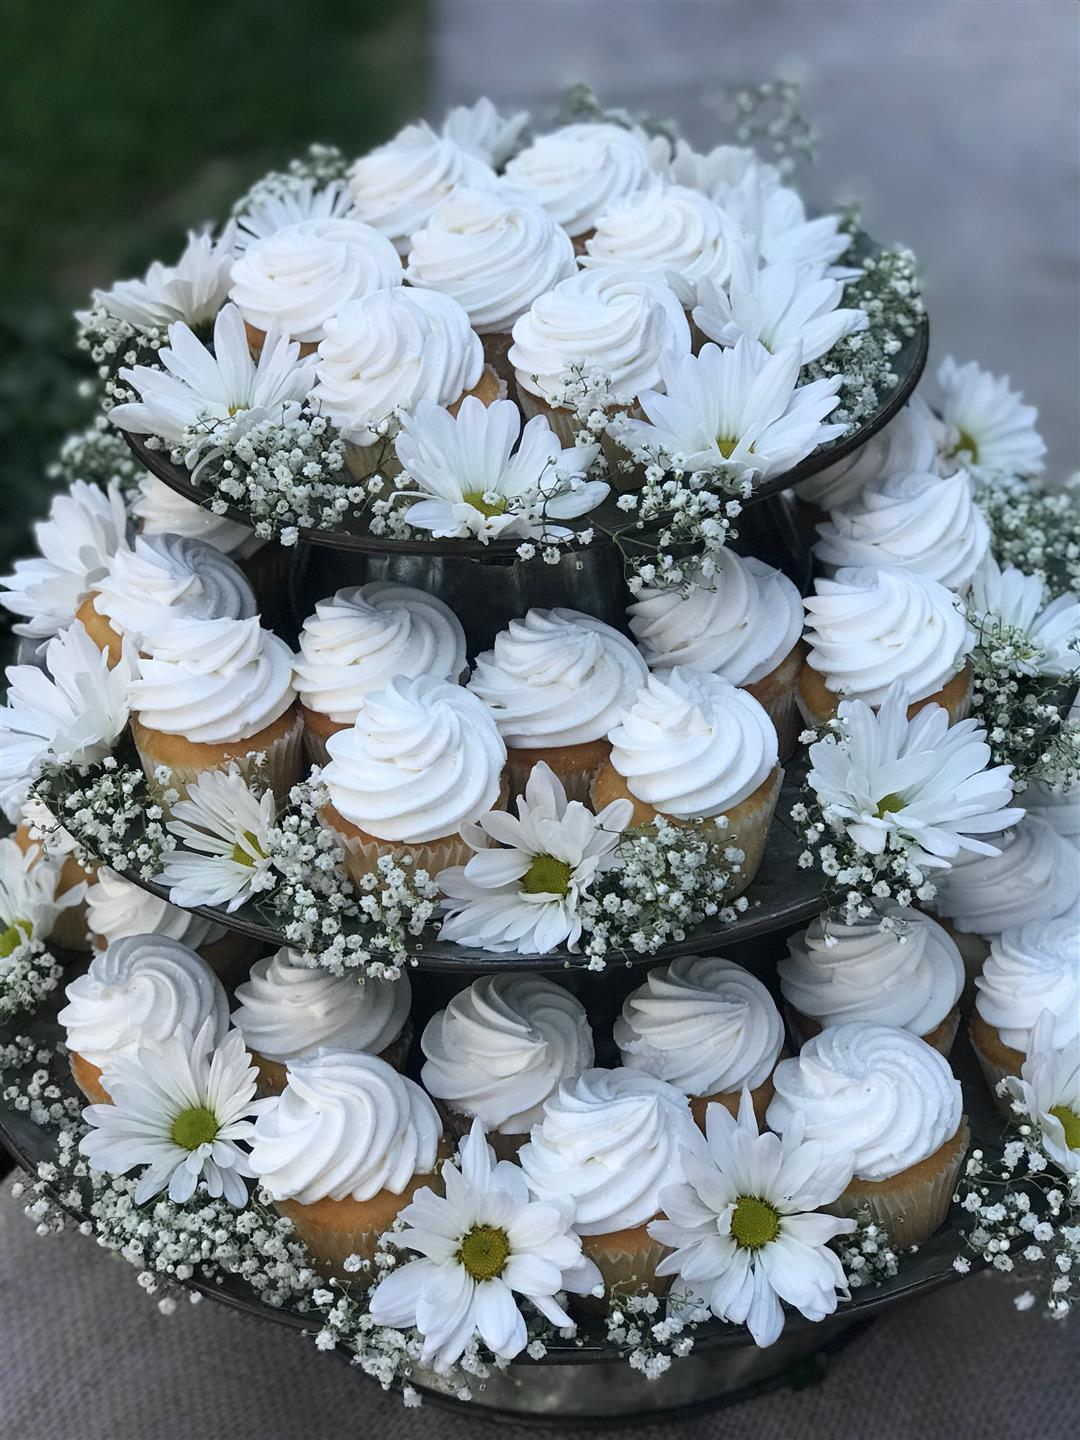 Cupcakes with white frosting, 3 tiers